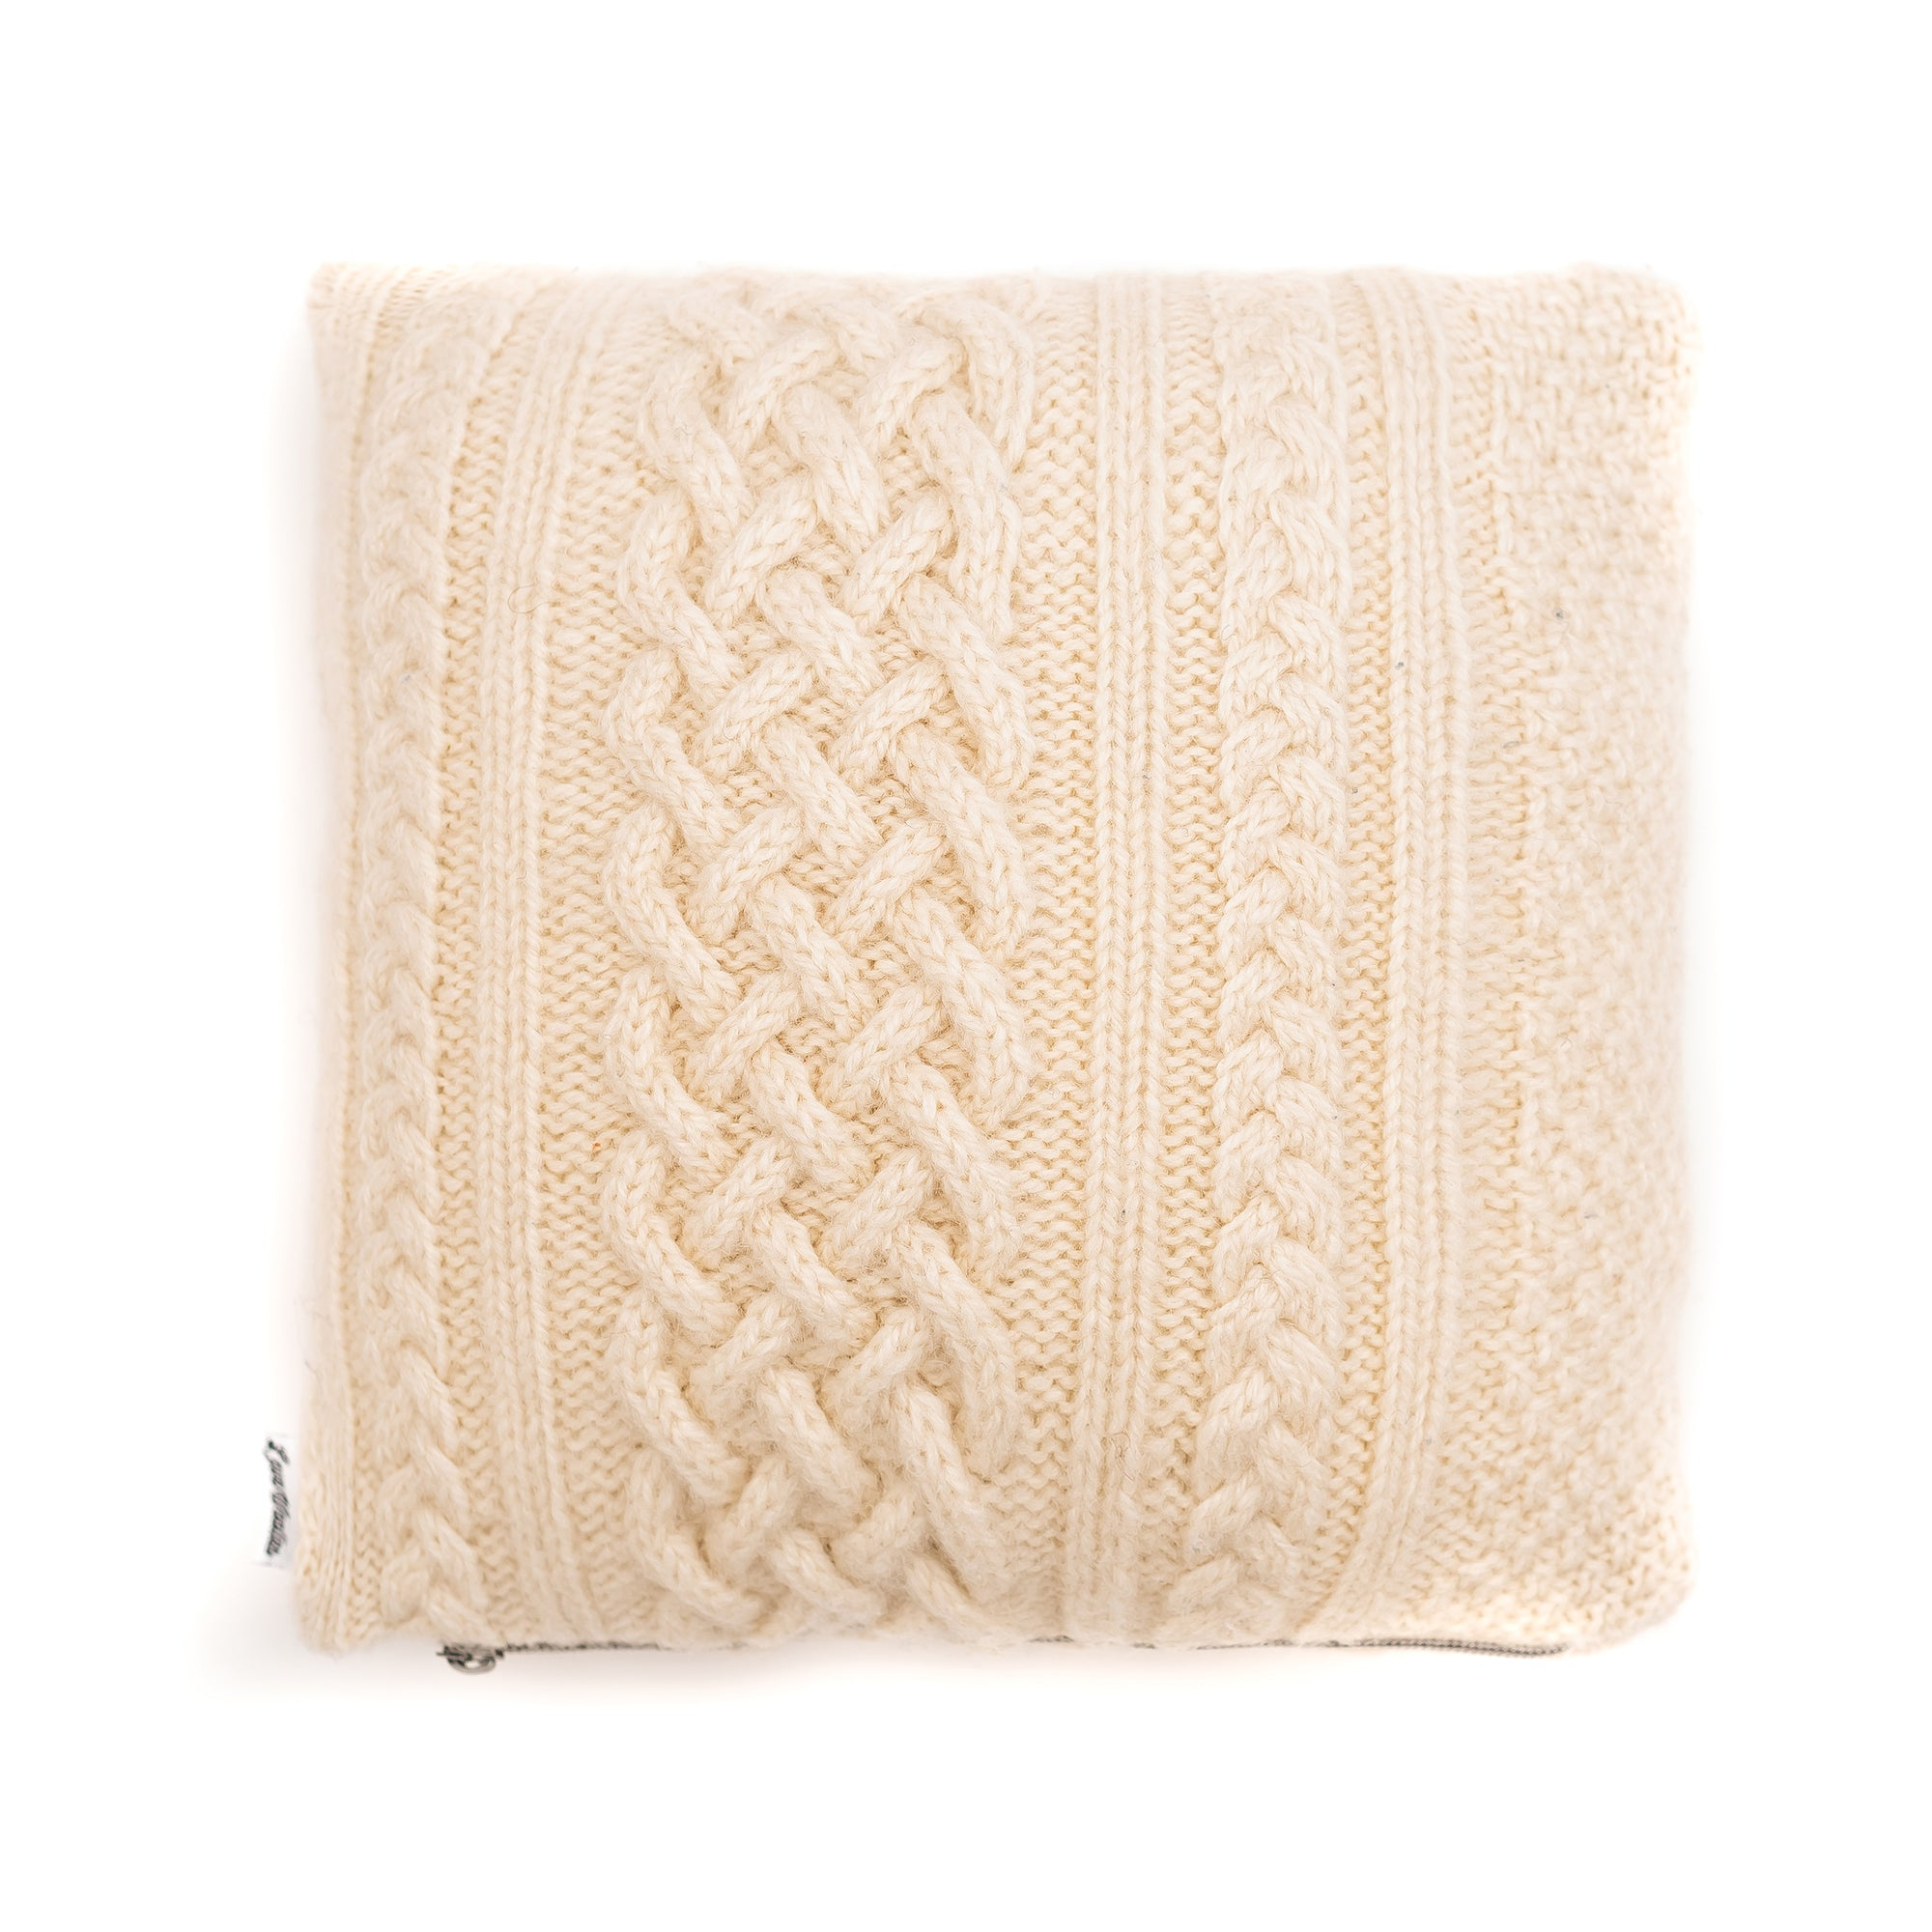 12x12 Cream Cable Knit Wool Pillow Cover